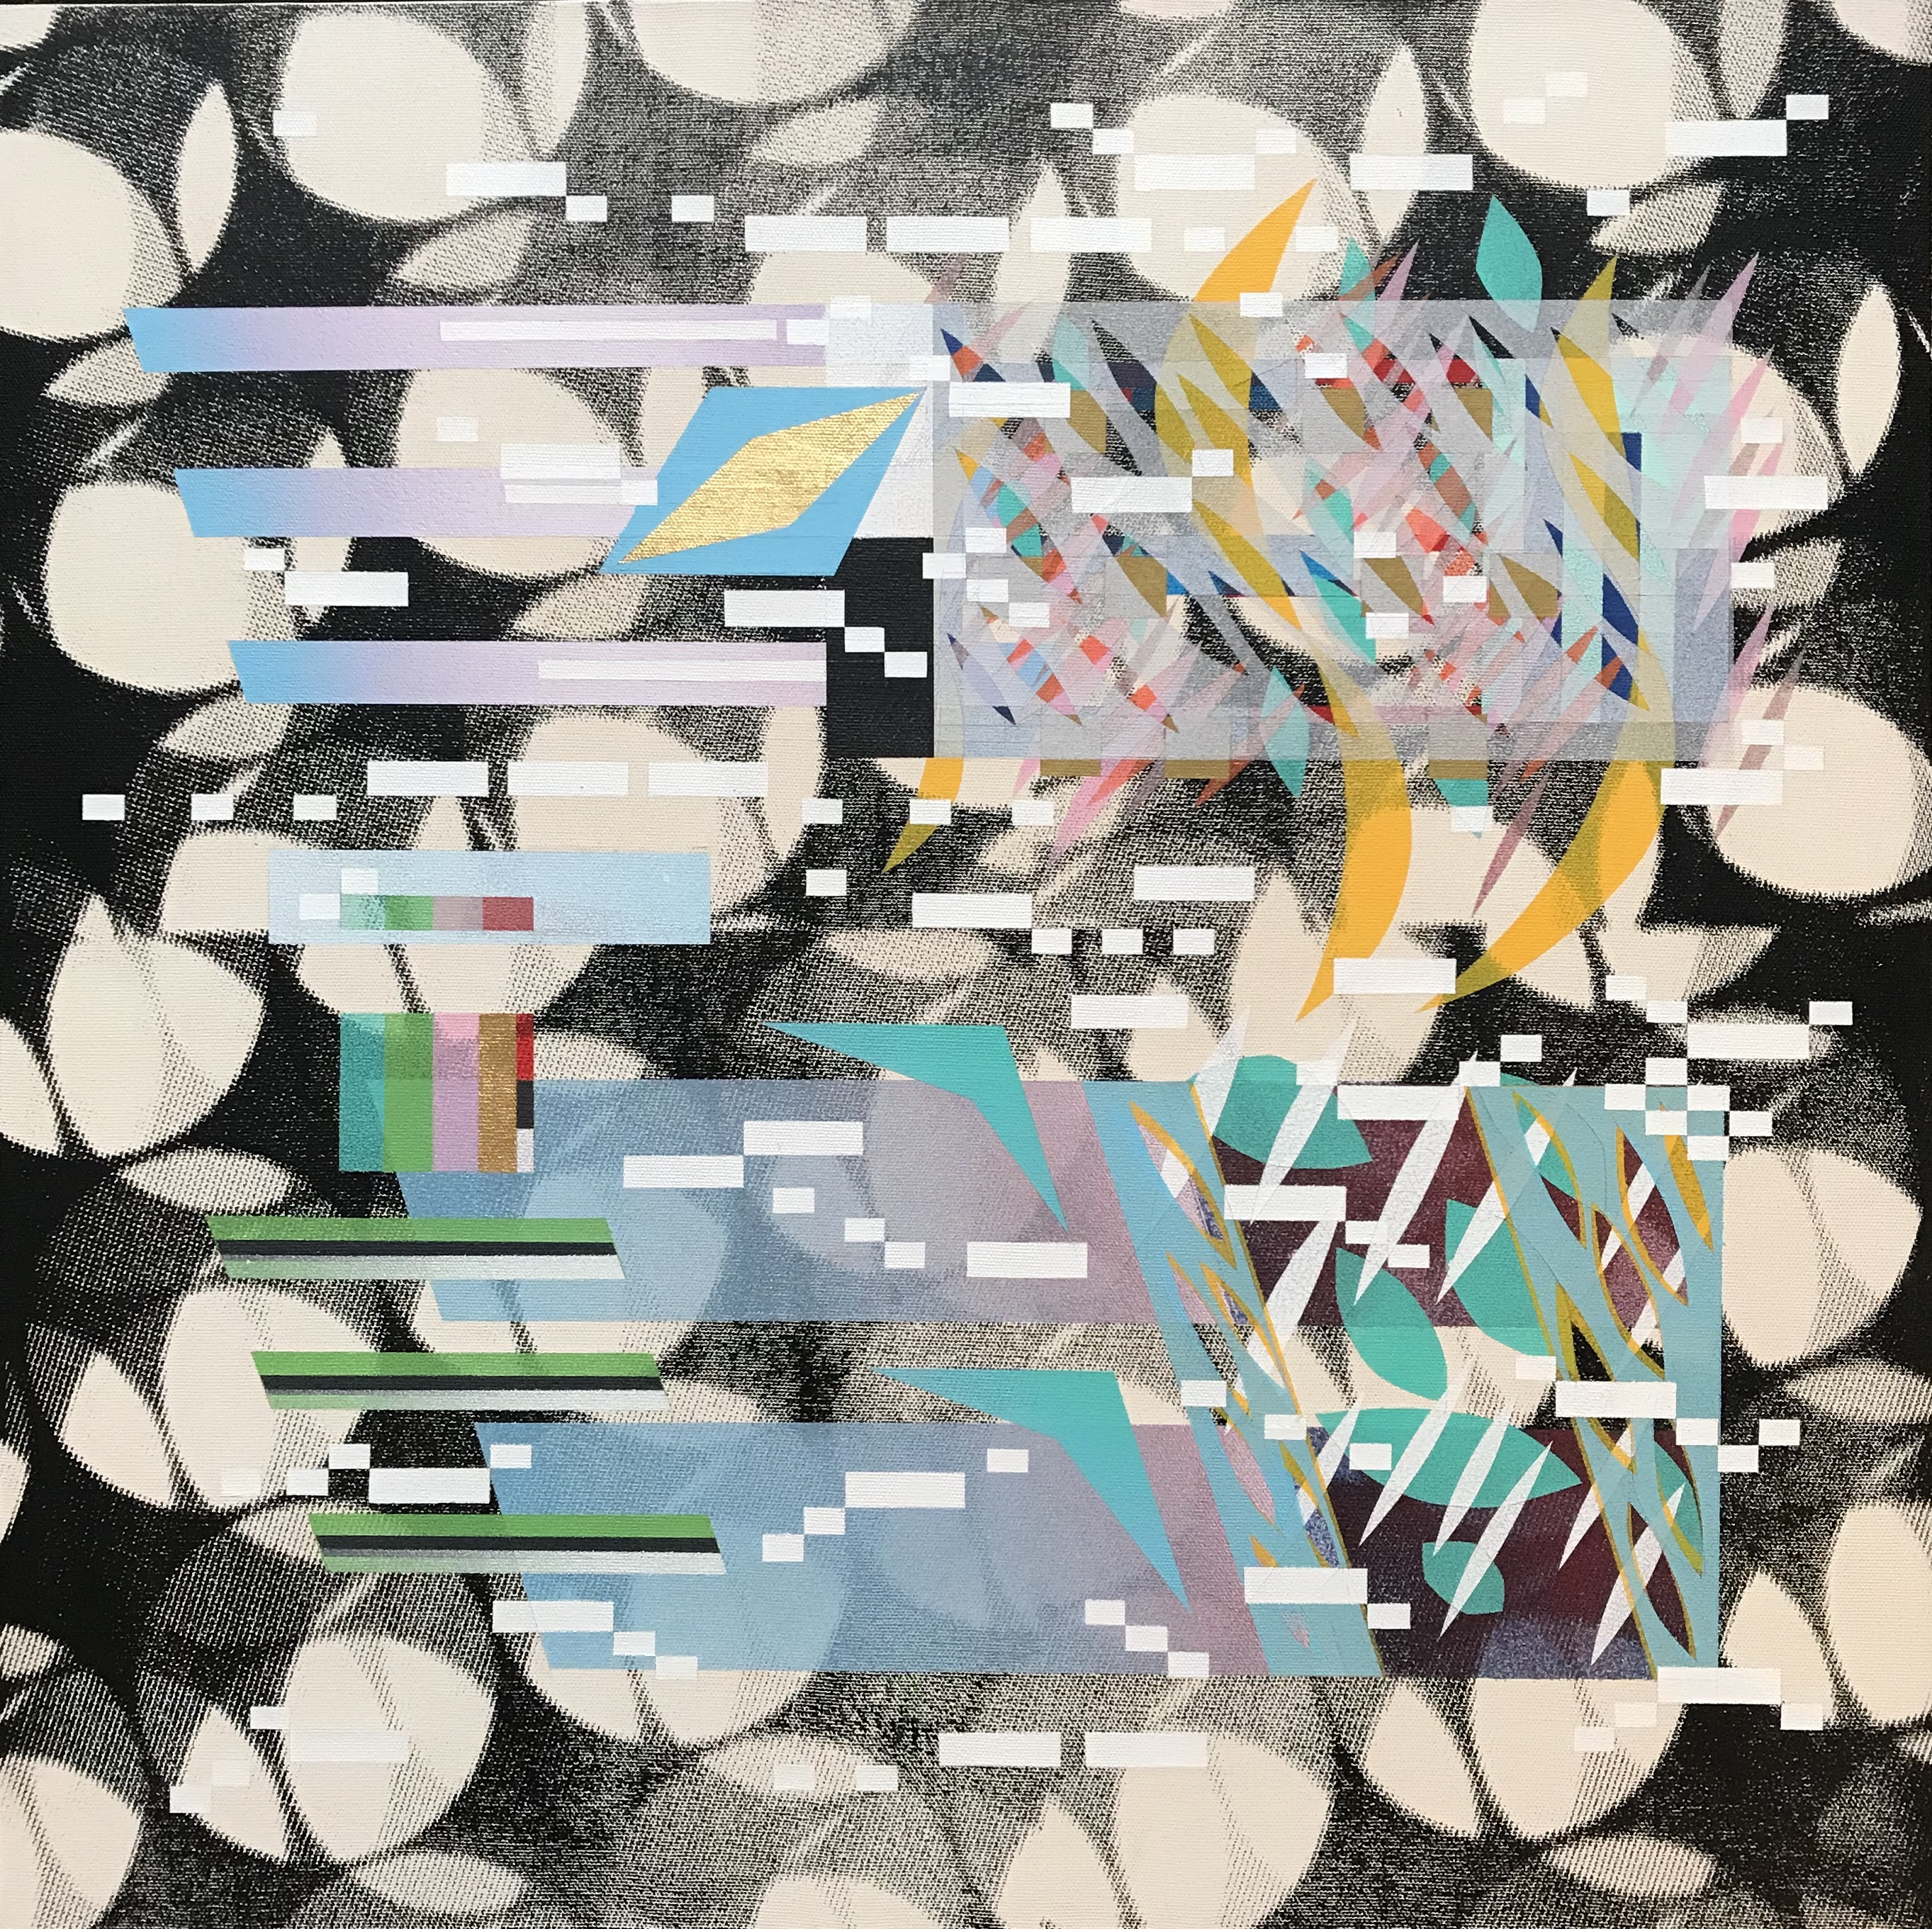 Glitched Habitat #1 (with morse coding) SOS.Silkscreen, Goldleaf and Spray-paint on Canvas 61cmx61cm 2020